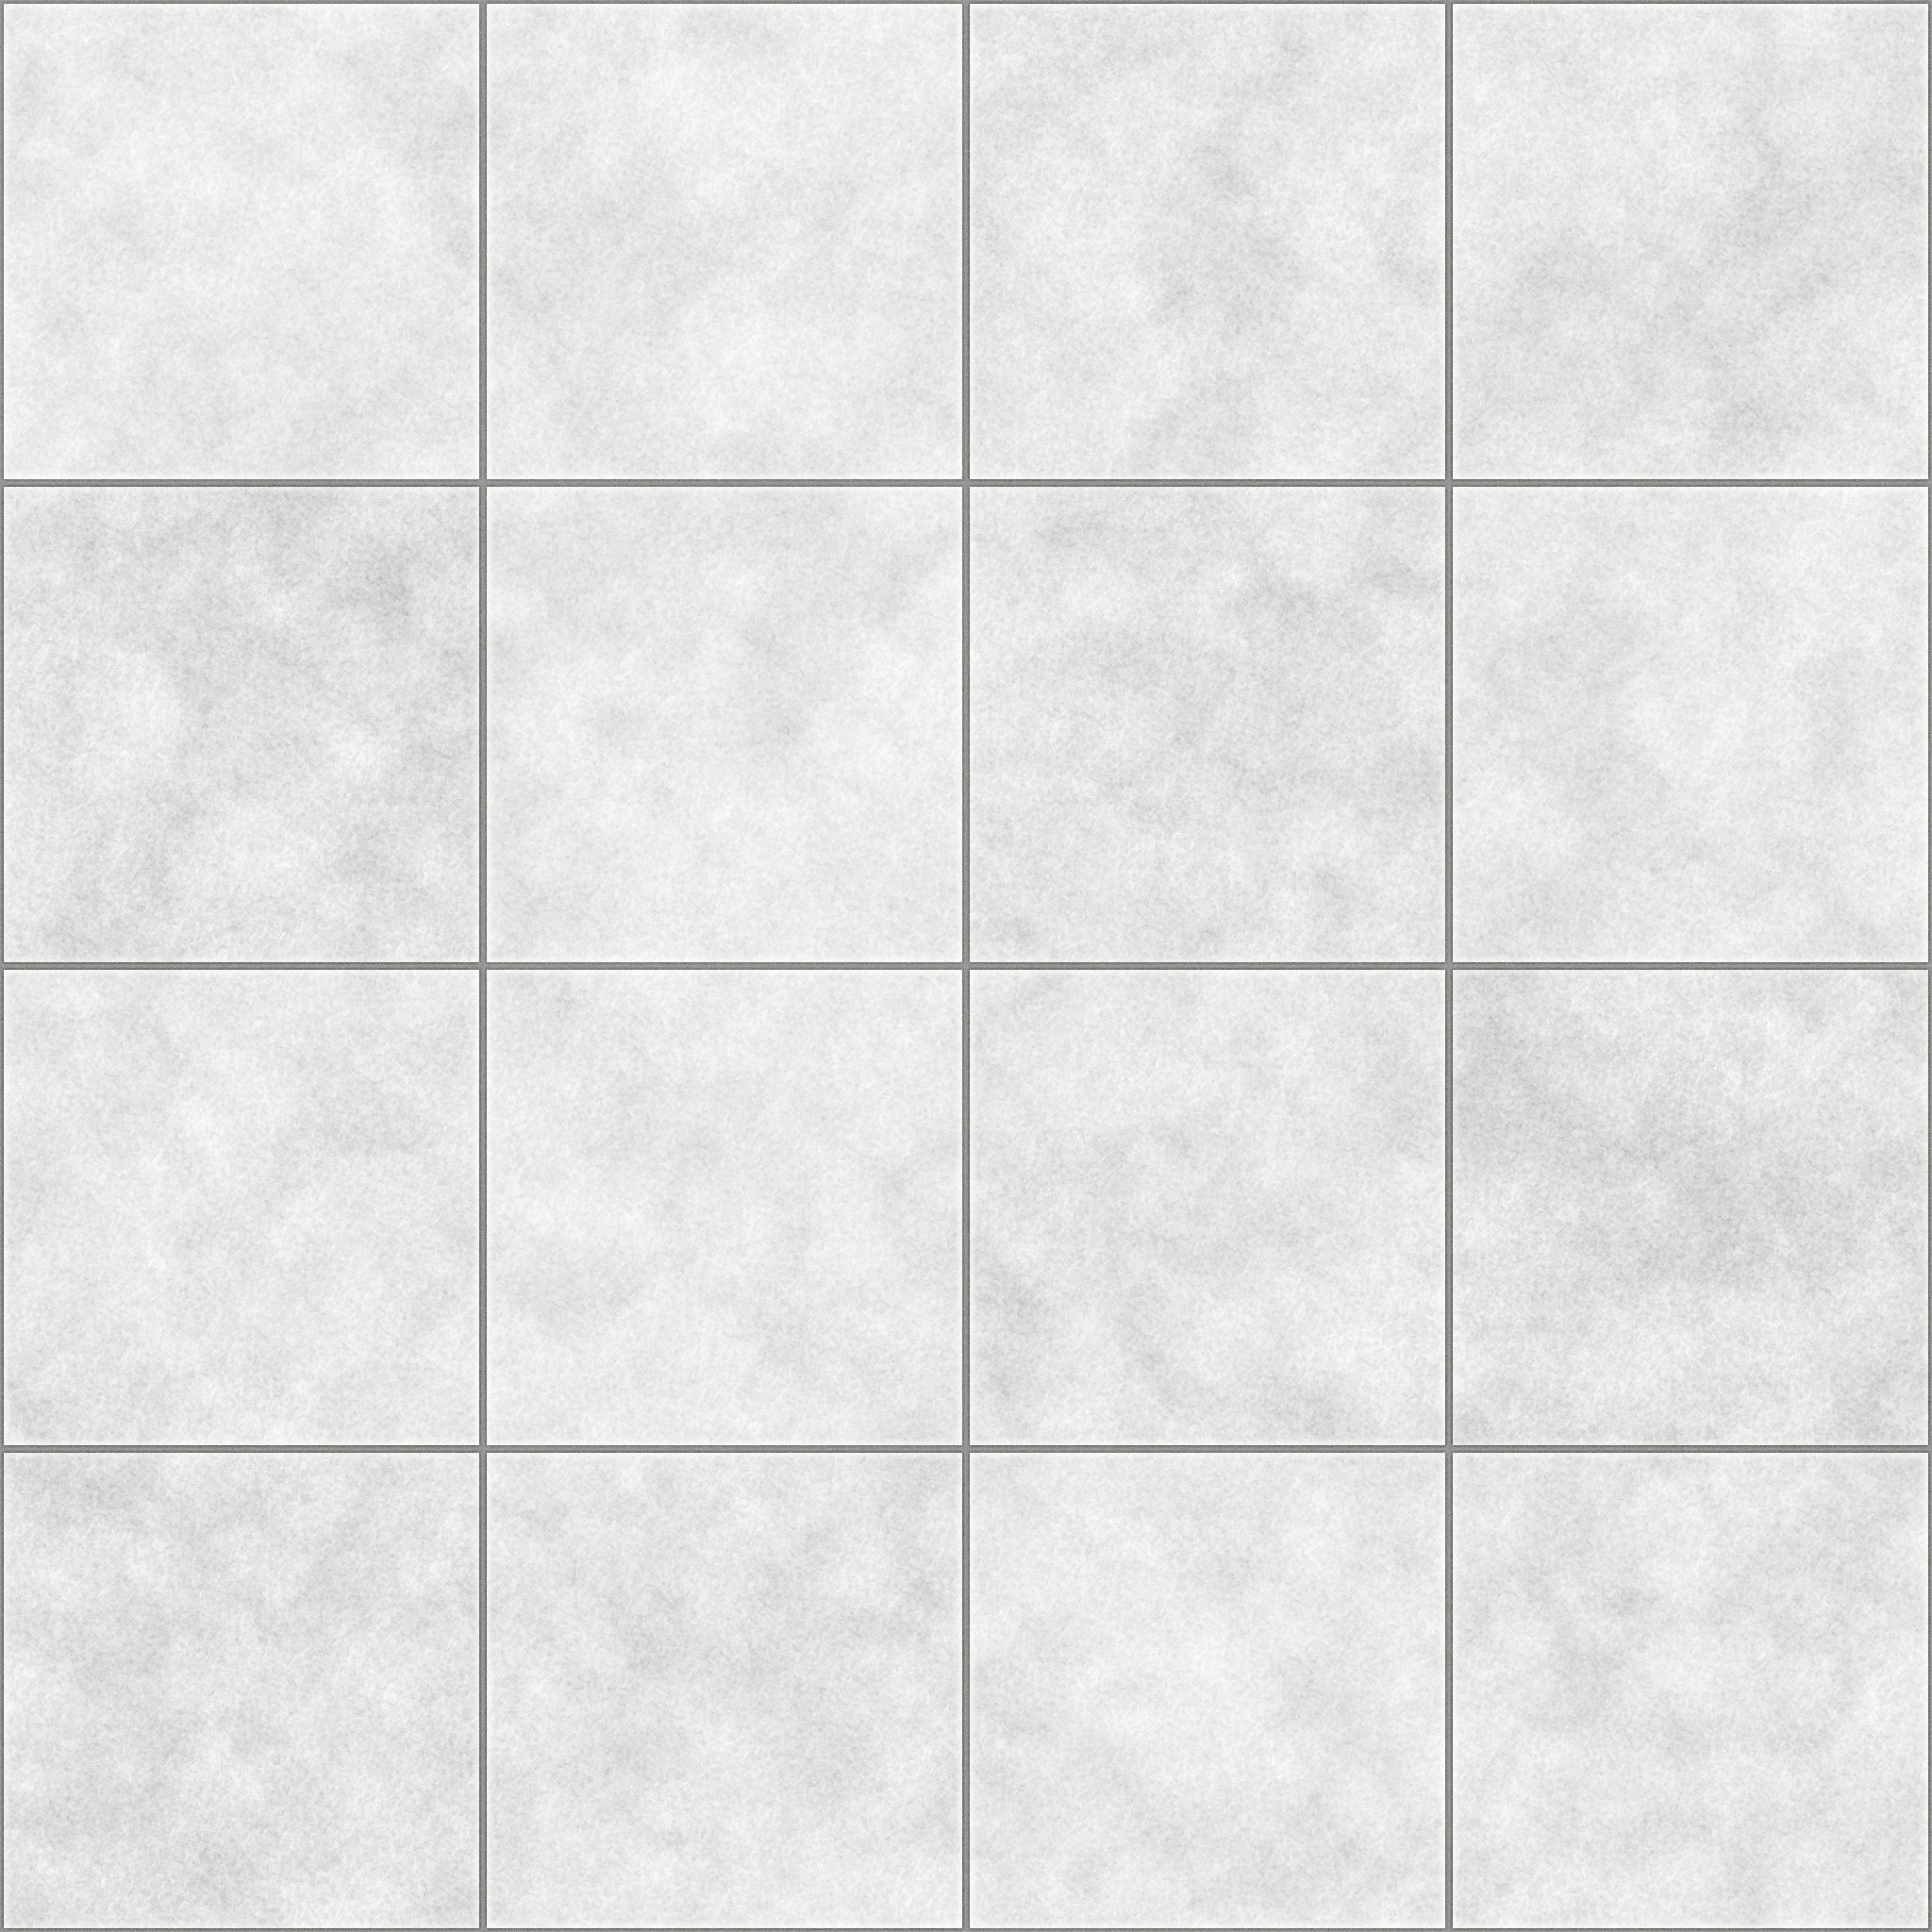 Home Element Marble Floor Tiles Texture Tileable 2048×2048 By | CD ...